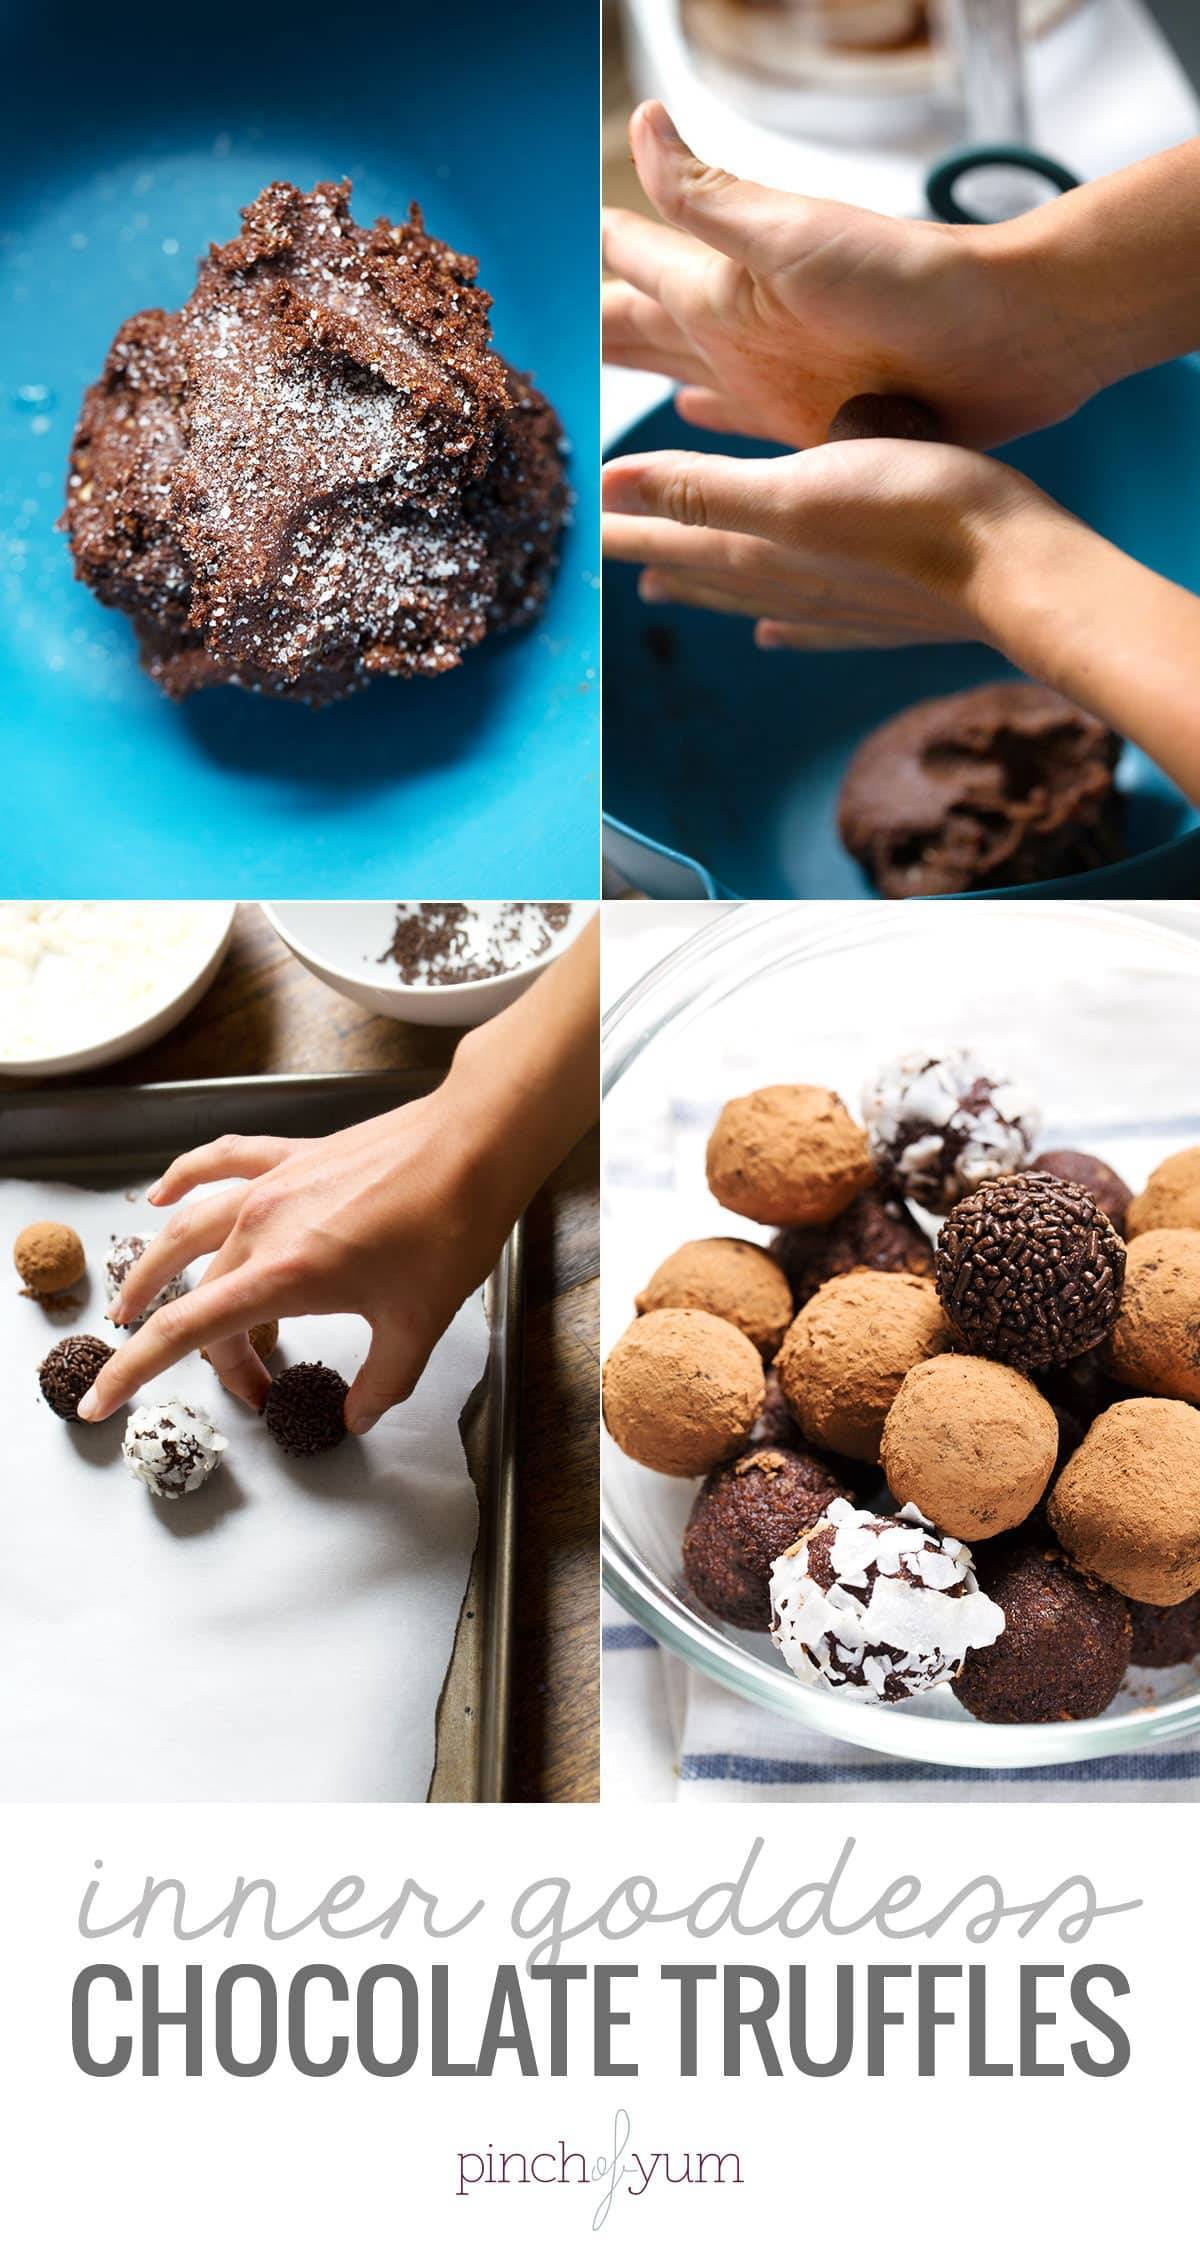 Inner Goddess Chocolate Truffles - these yummy bite-sized sweets are made with healthful, whole ingredients. Ready in 10 minutes, 90 calories each! | pinchofyum.com #healthy #dessert #chocolate #truffle